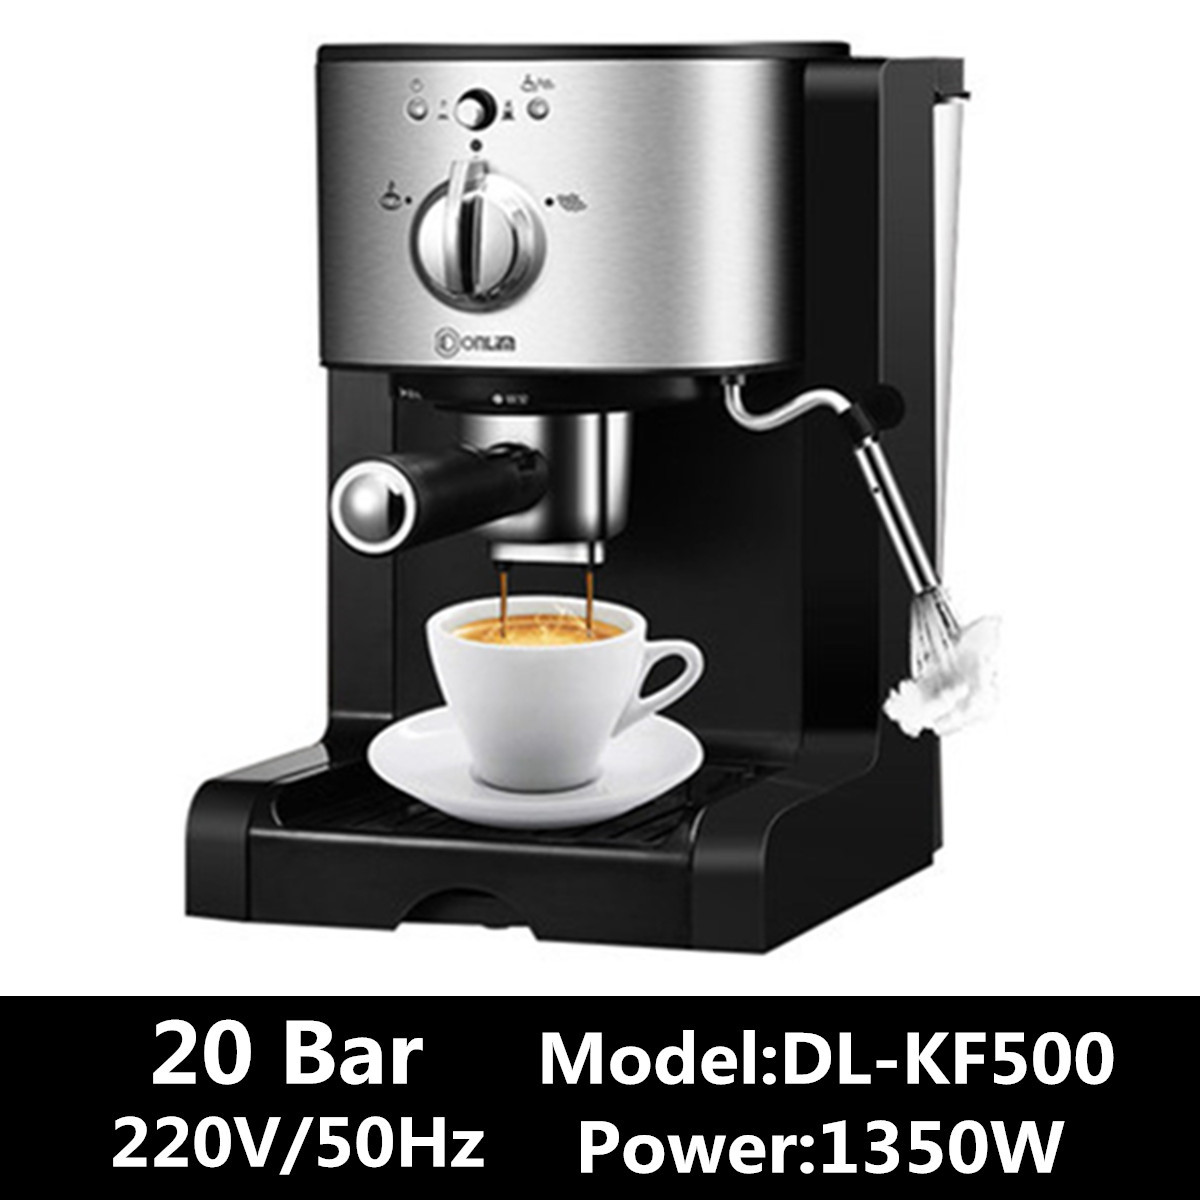 DL-KF500 3In1 Cafe Maker Machine Kitchen 1.5L  Semi Automatic Coffee Maker Barista Espresso Machine Milk SteamerDL-KF500 3In1 Cafe Maker Machine Kitchen 1.5L  Semi Automatic Coffee Maker Barista Espresso Machine Milk Steamer